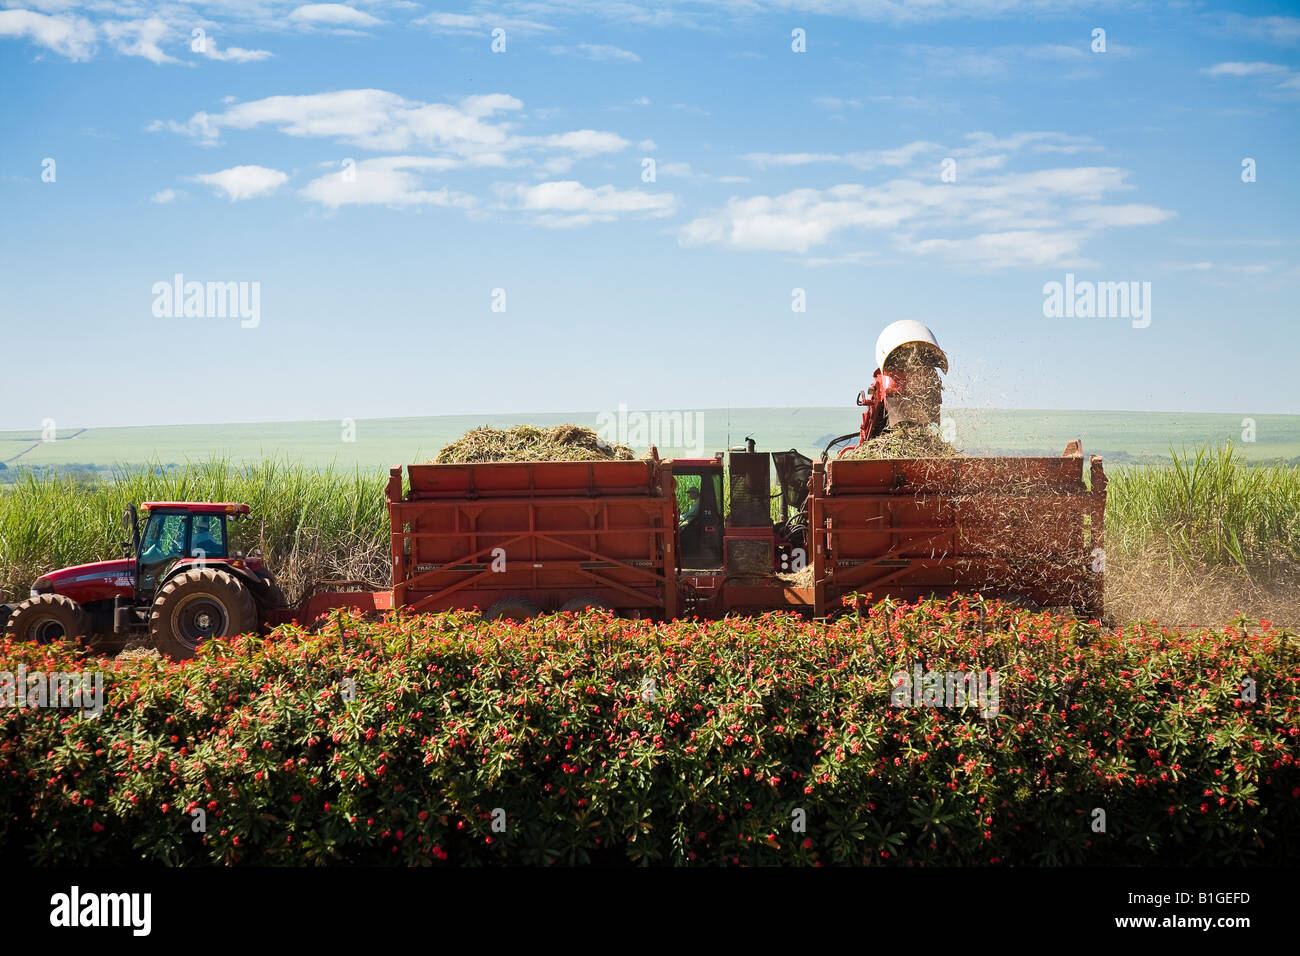 Mechanized agriculture sugarcane cutting for production of ethanol and sugar Brazil May 2008 - Stock Image